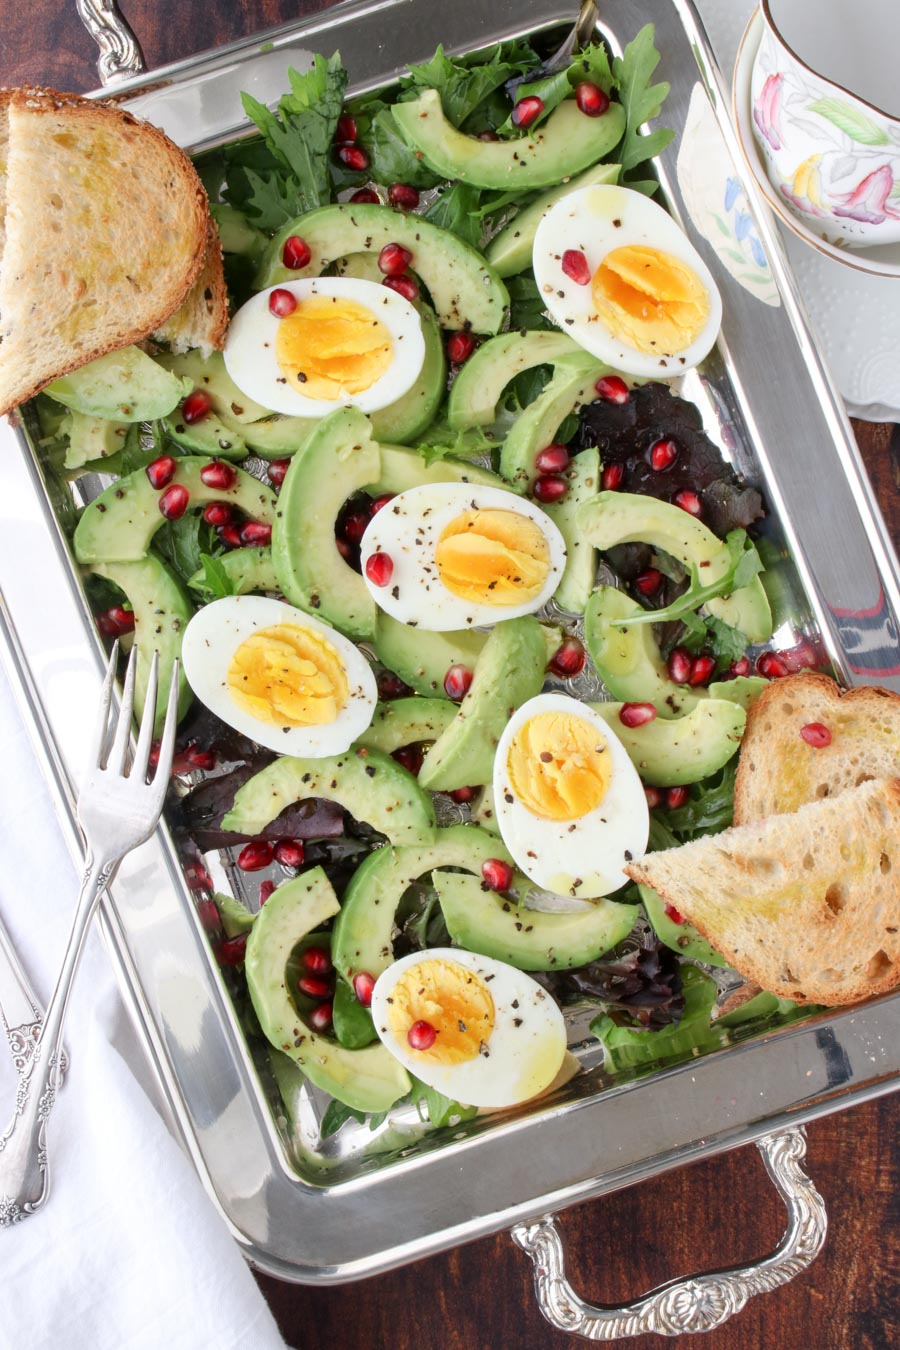 silver platter filled with lettuce, avocados, hard boiled eggs, pomegranate seeds and toast